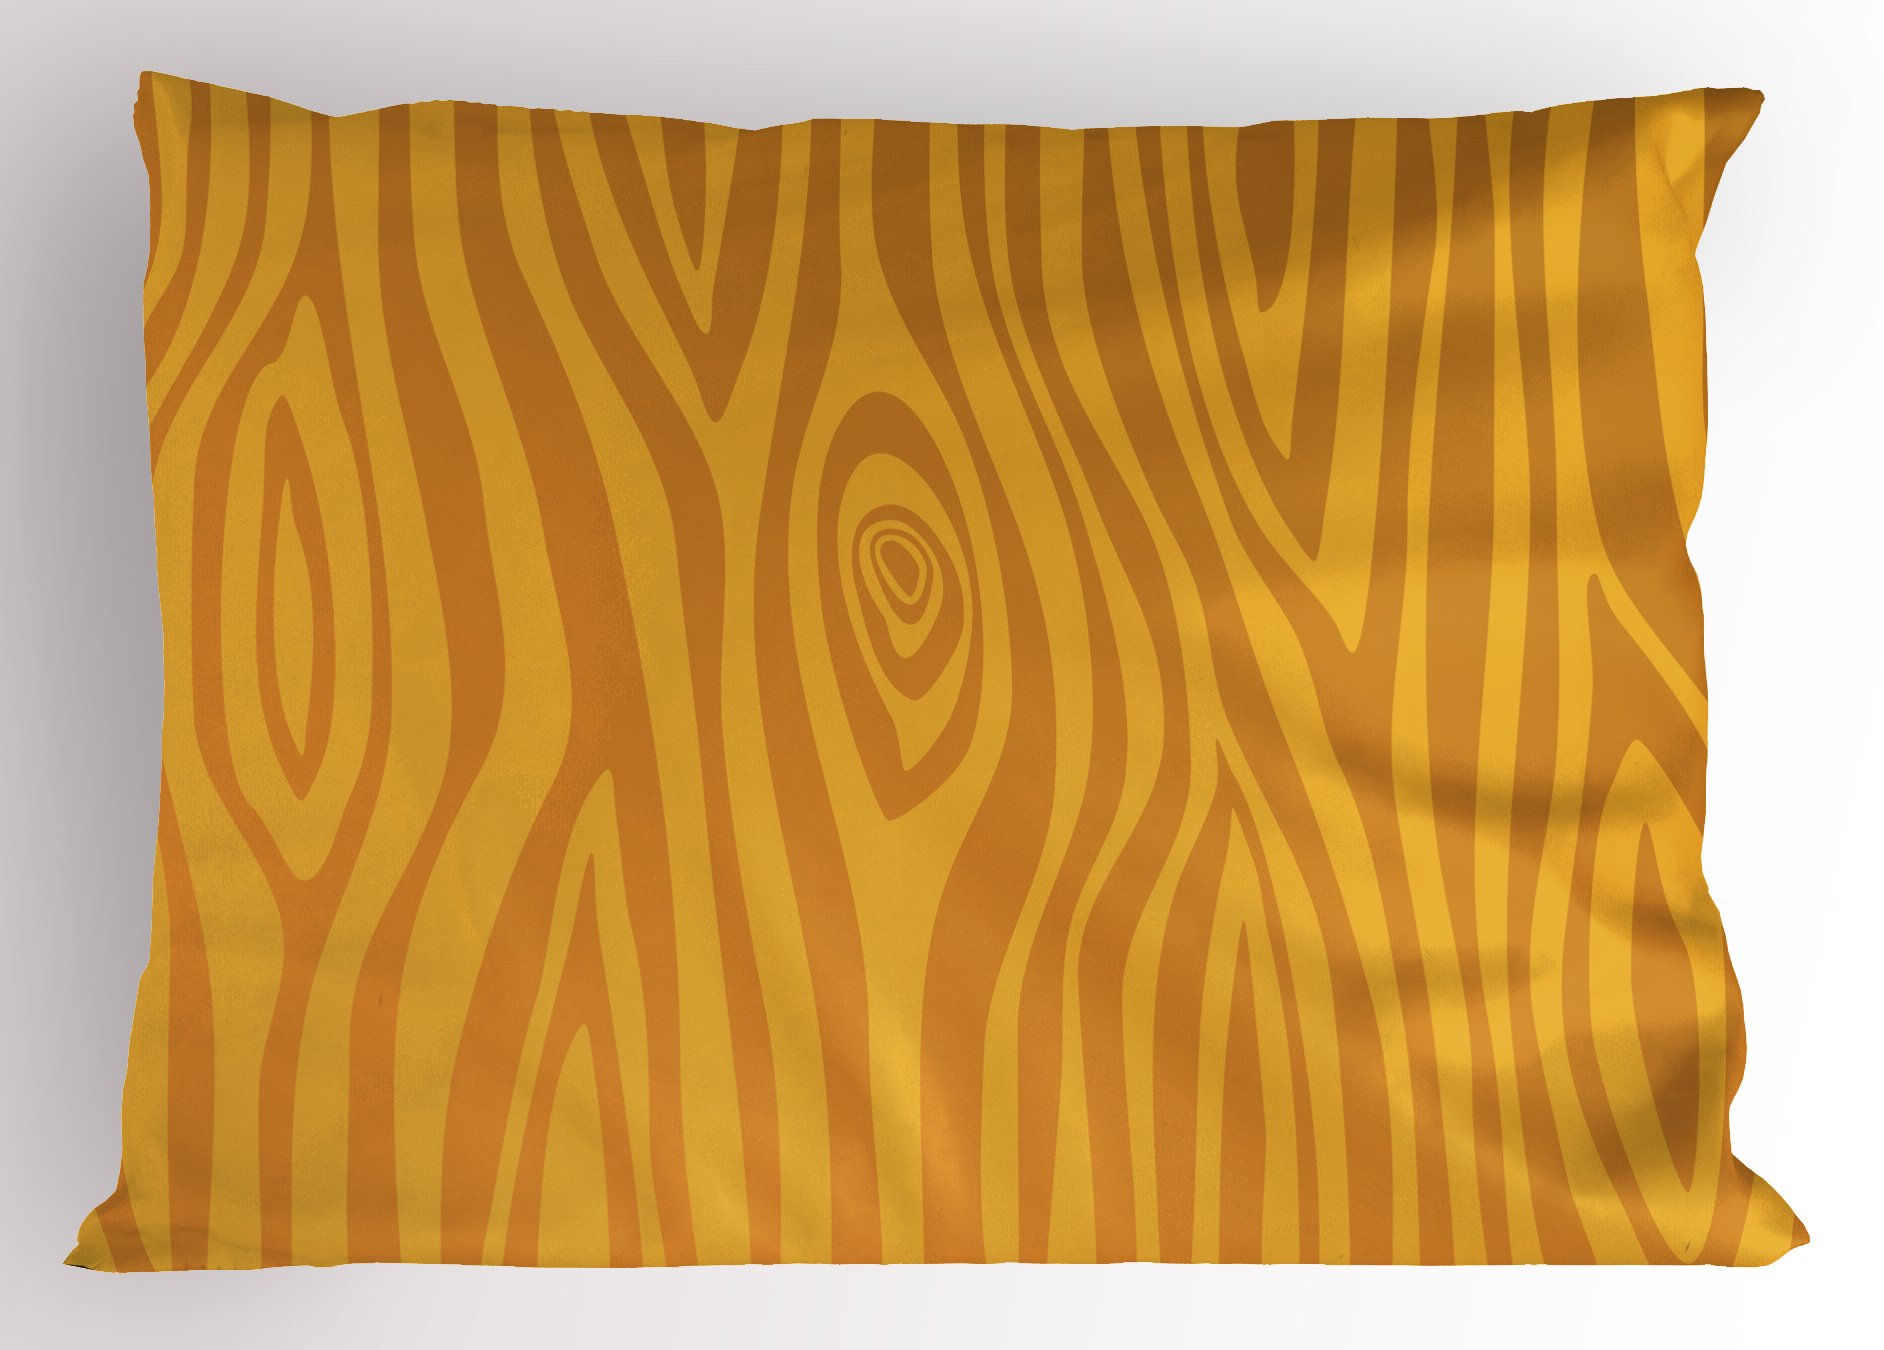 Lunarable Wood Print Pillow Sham, Tree Bark Pattern with Warm Colors Doodle Stripes Circular Shapes, Decorative Standard King Size Printed Pillowcase, 36 X 20 inches, Apricot and Earth Yellow